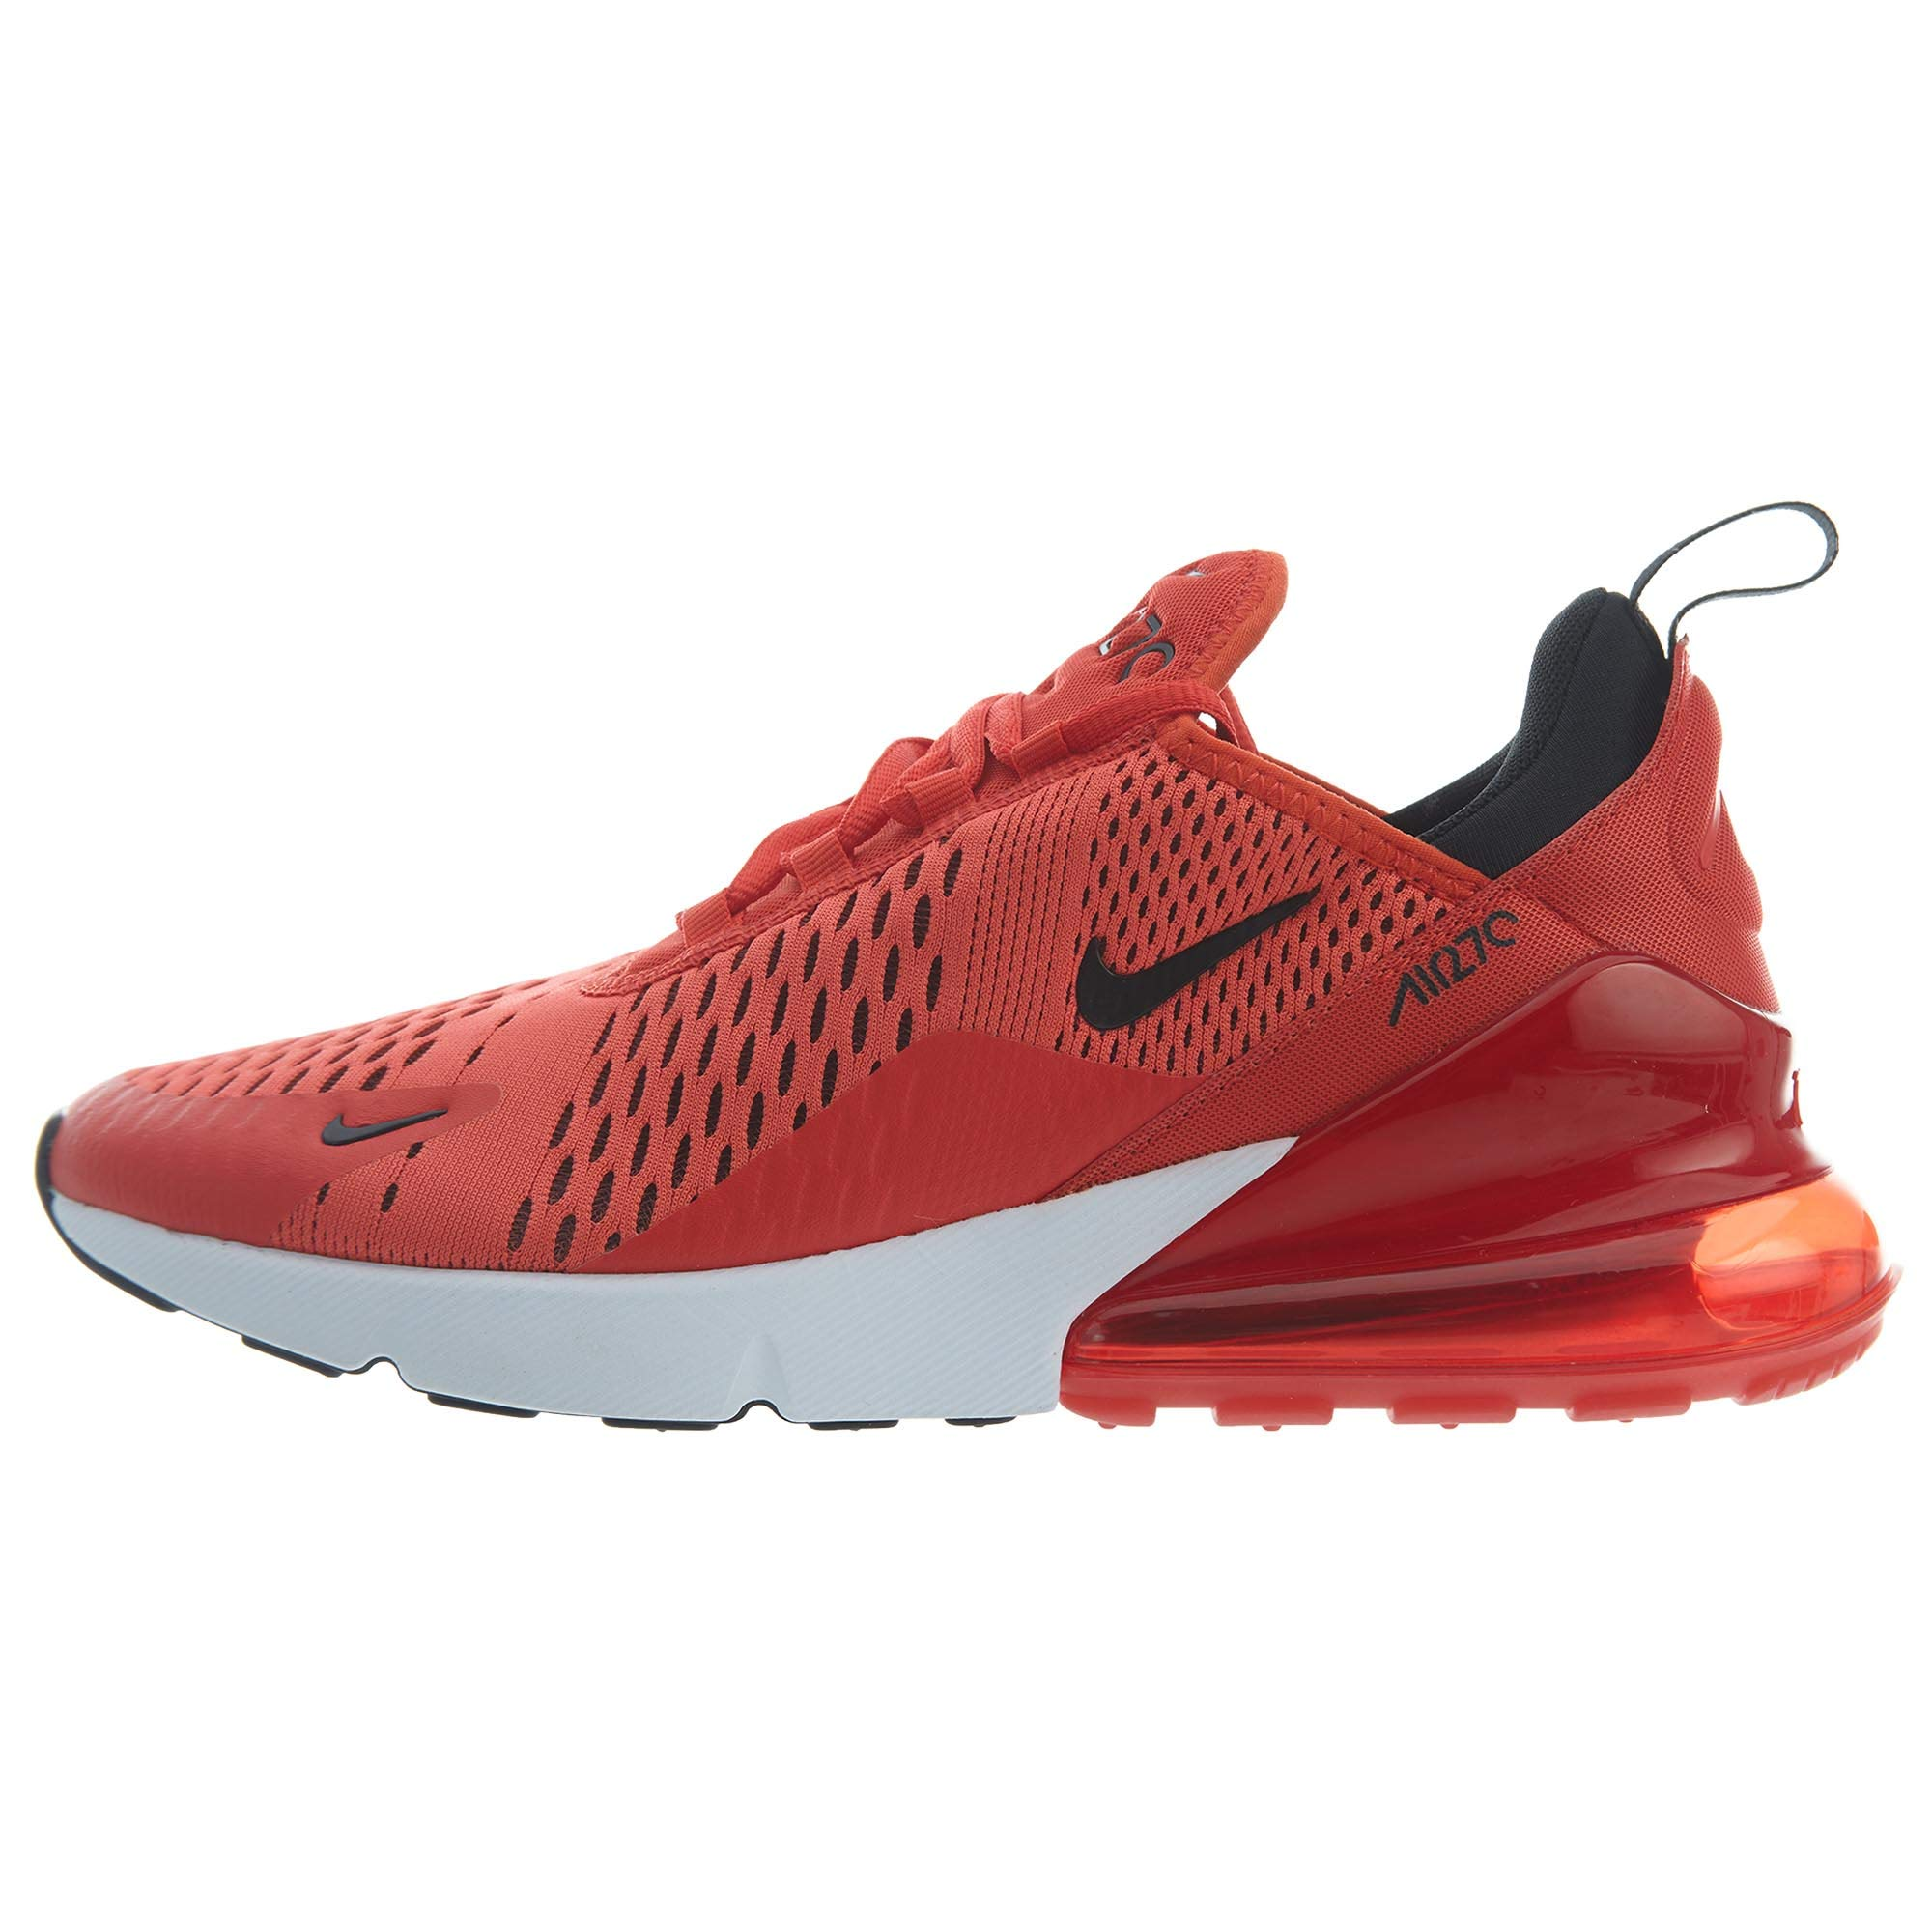 cc2ddcf125 Galleon - Nike Air Max 270 - US 12